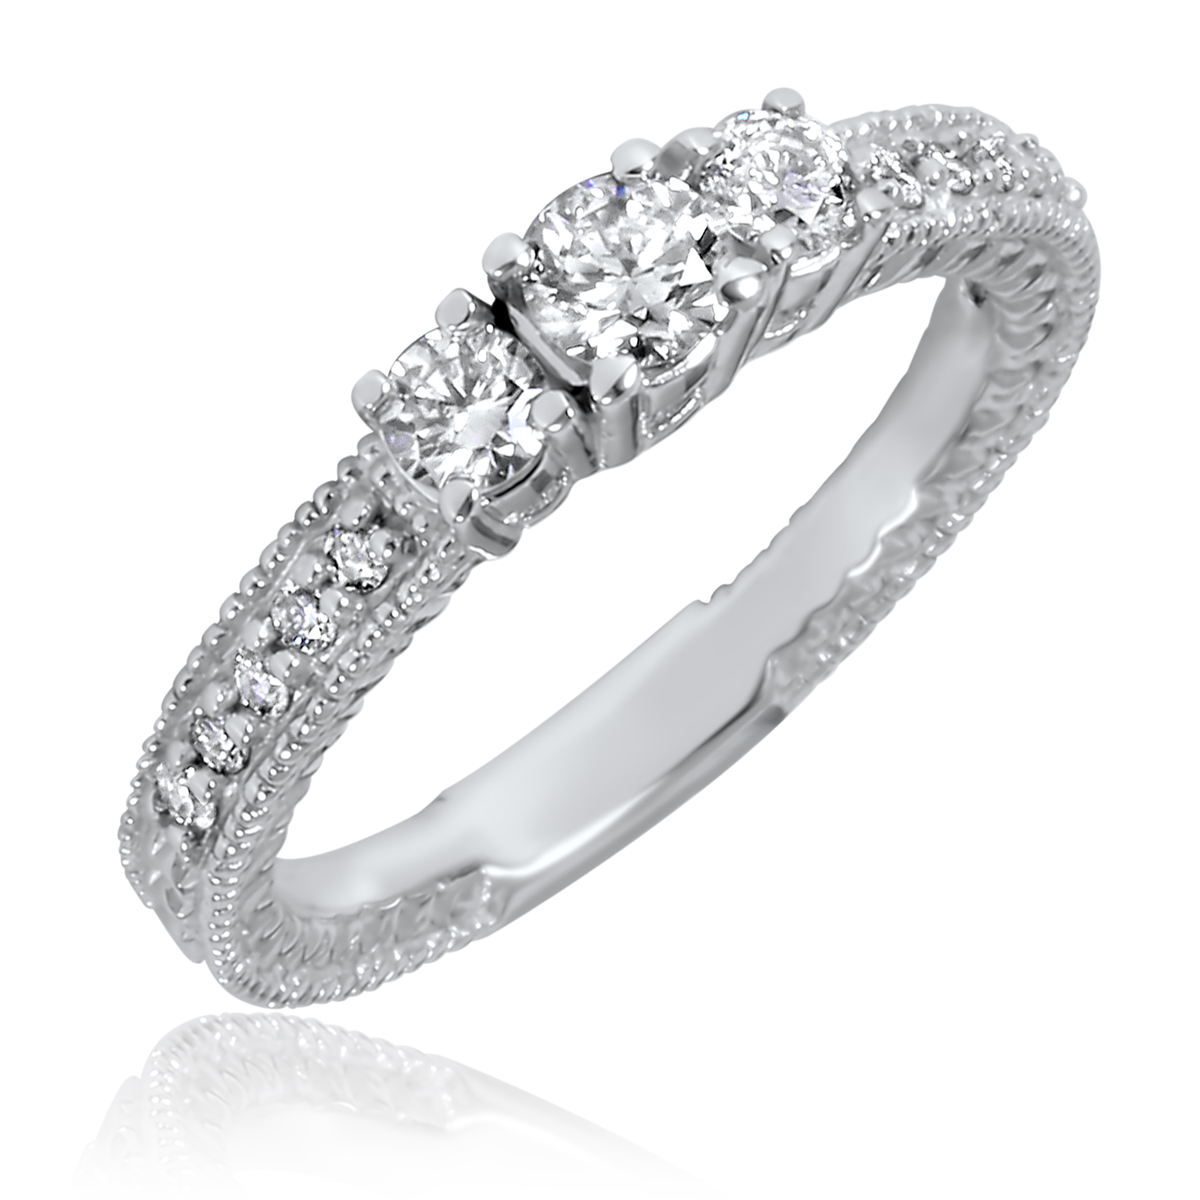 1/2 Carat T.W. Round Cut Diamond Ladies Engagement Ring 10K White Gold- Size 8